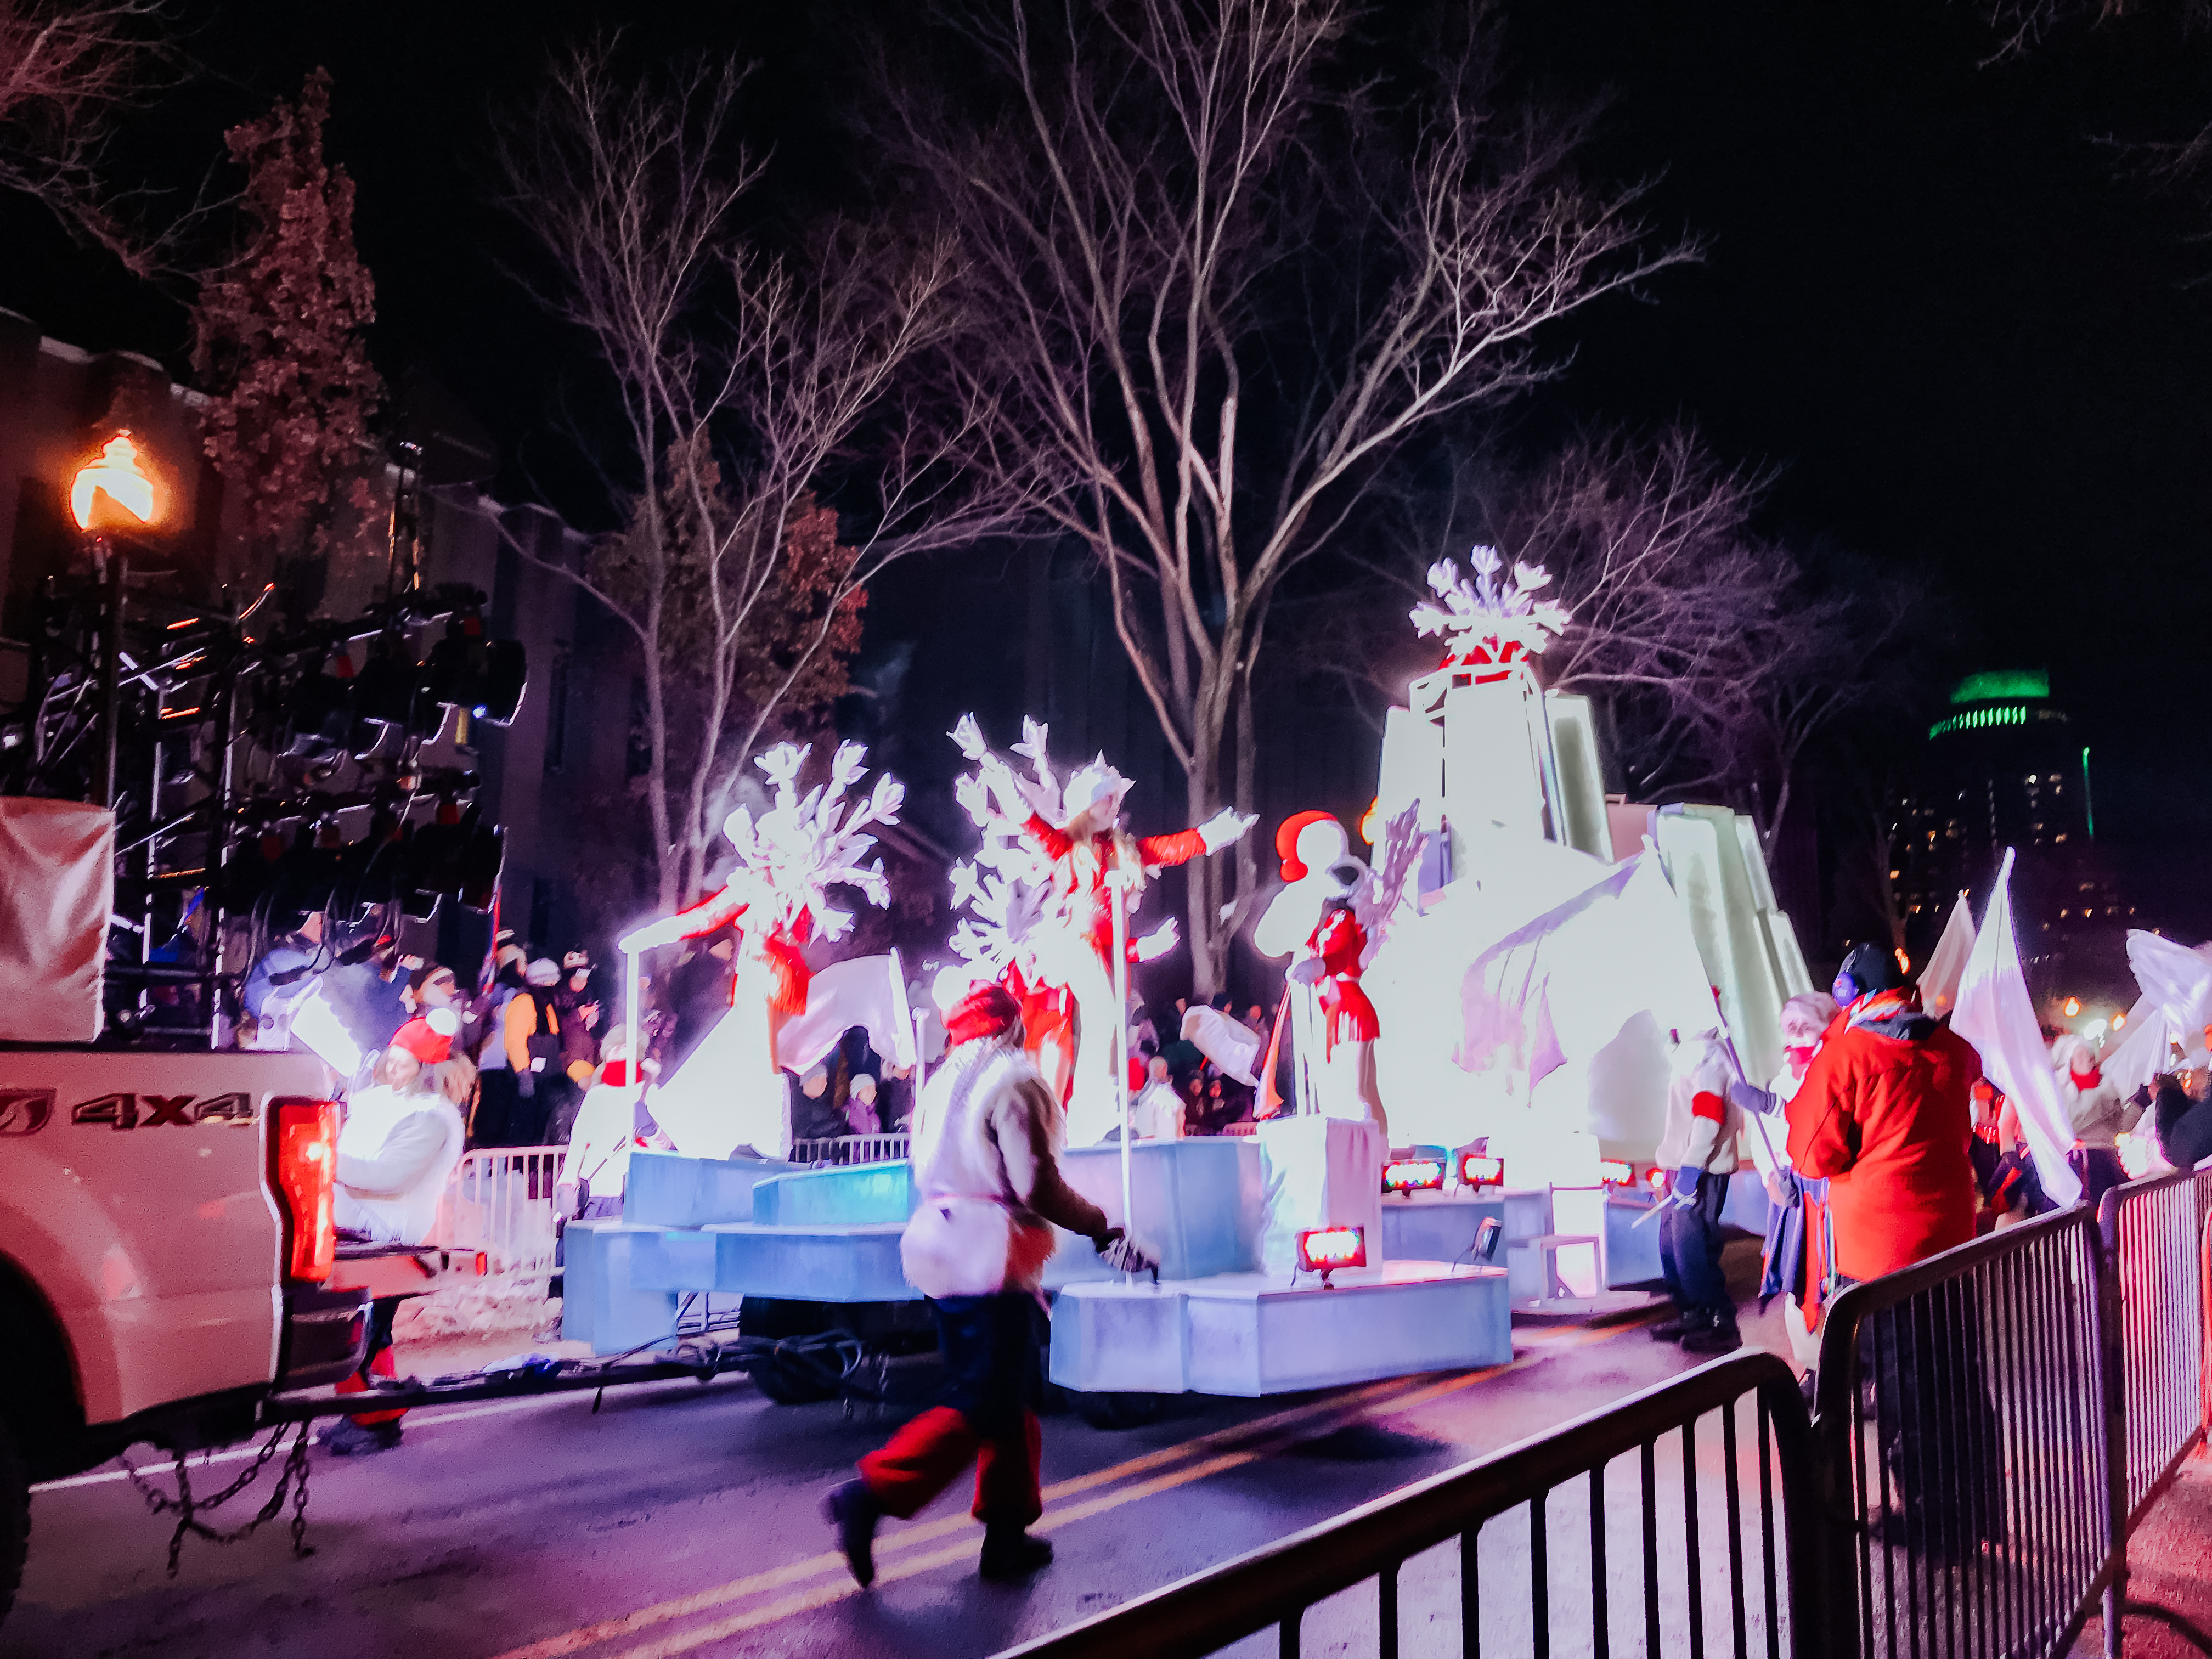 parade float in the Carnaval de Quebec winter parade